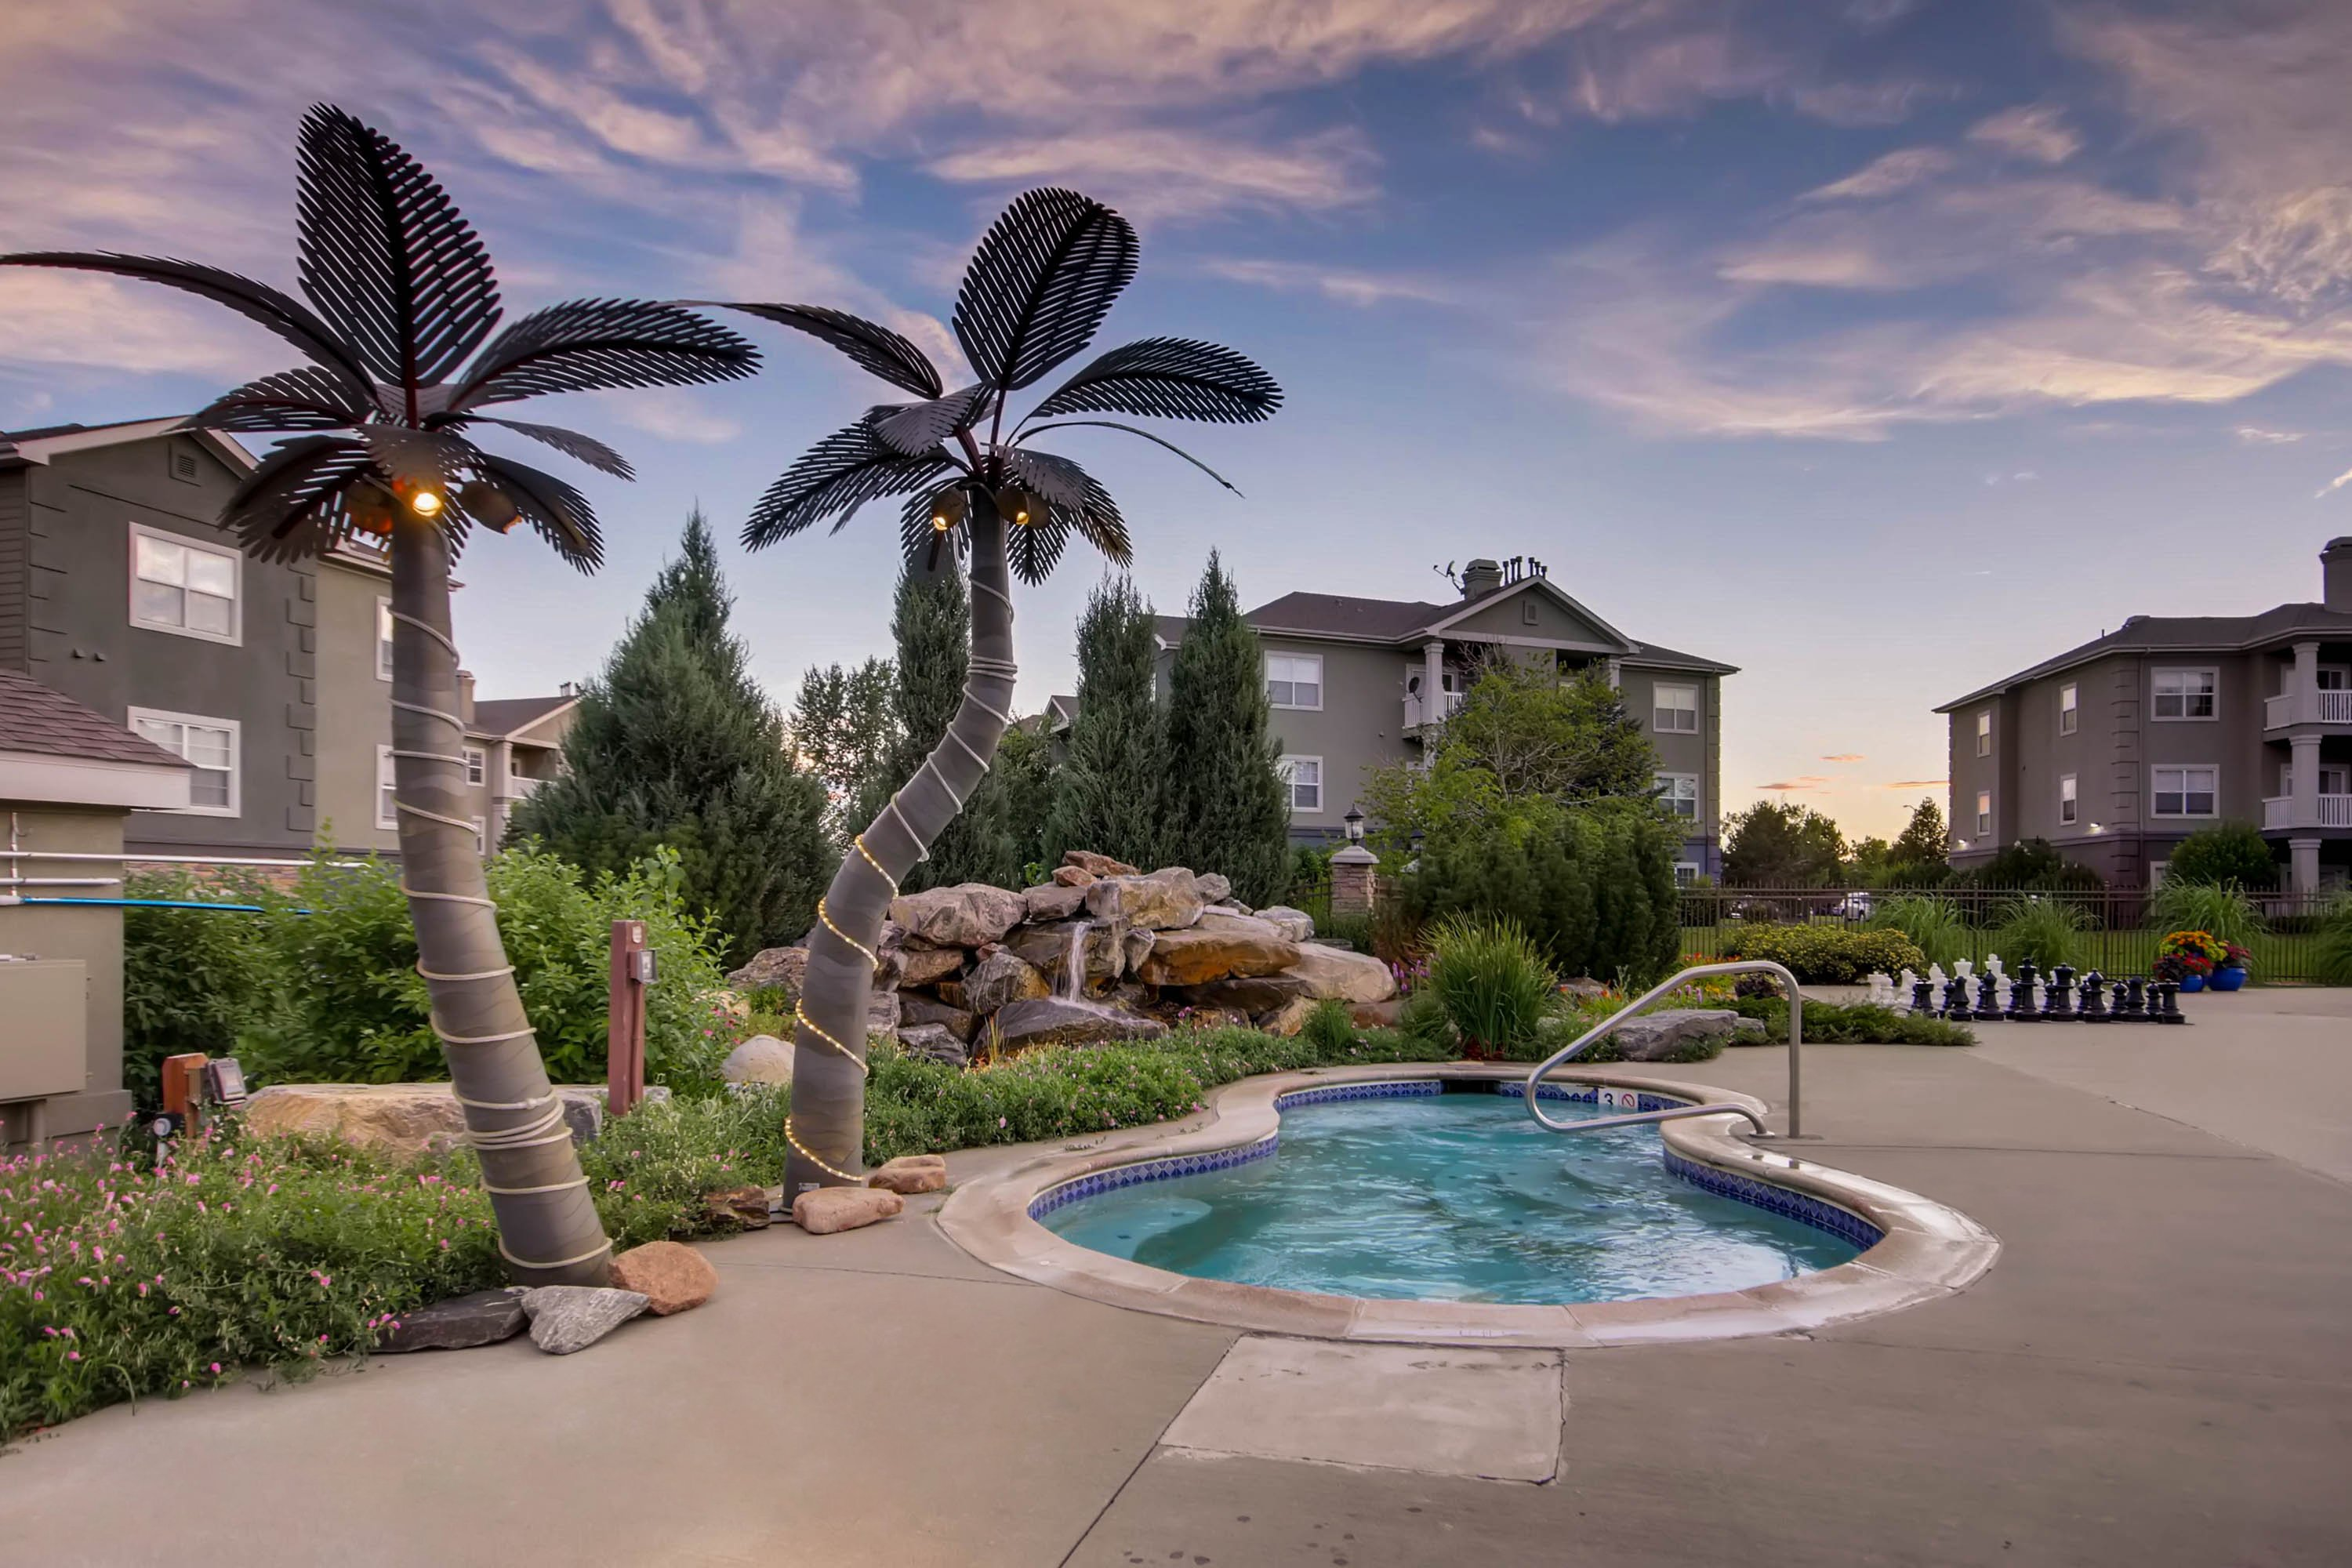 9a2ef3e3325 Stone Mountain Apartments - Outdoor Pool Area and Jacuzzi